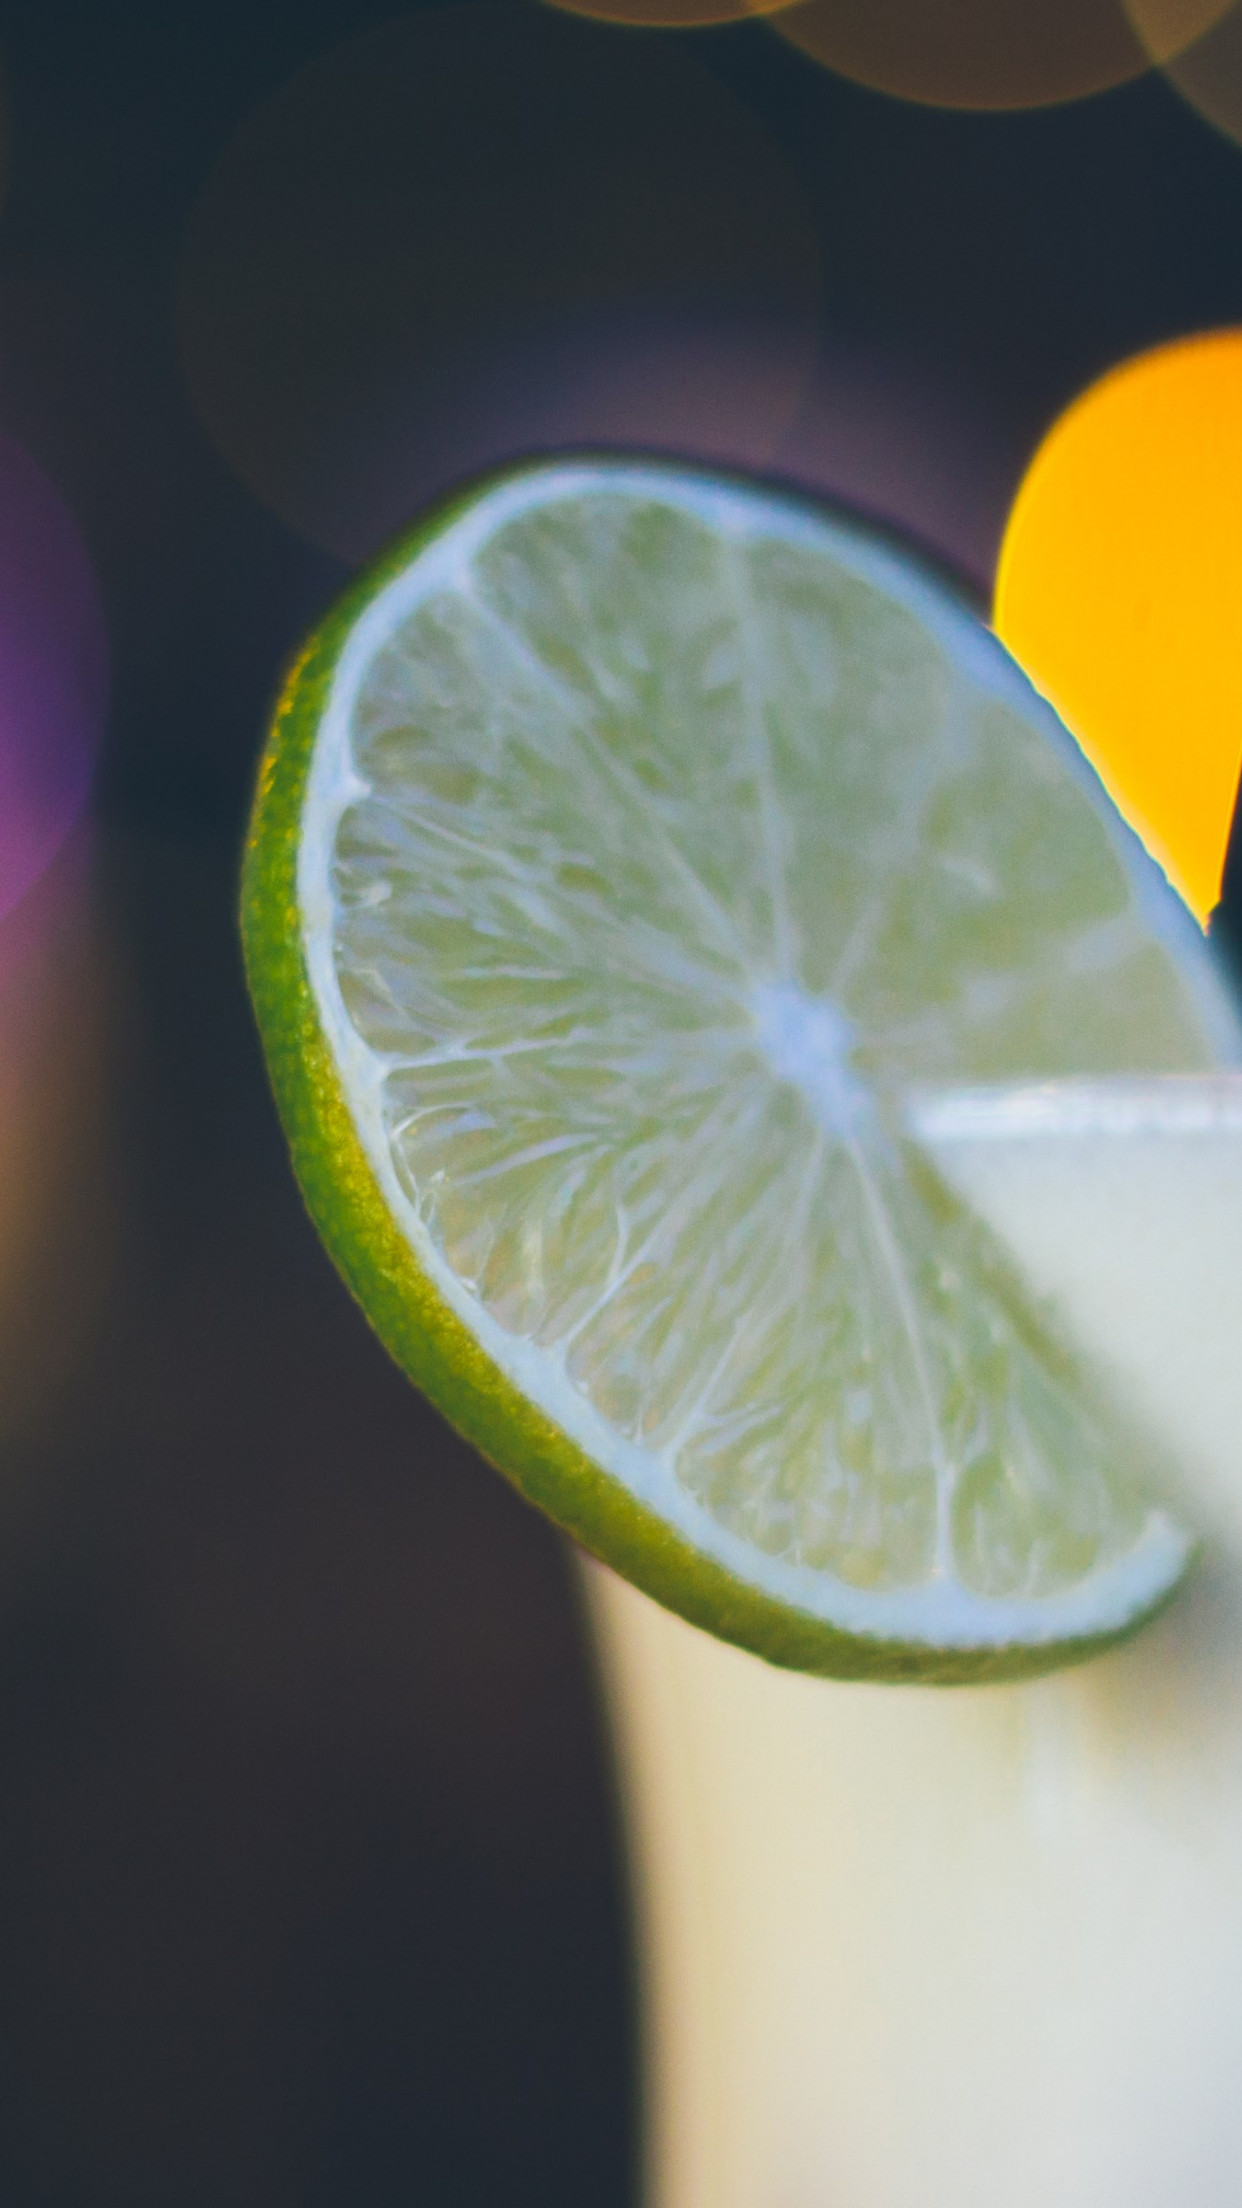 Exotic cocktail with lime | 1242x2208 wallpaper